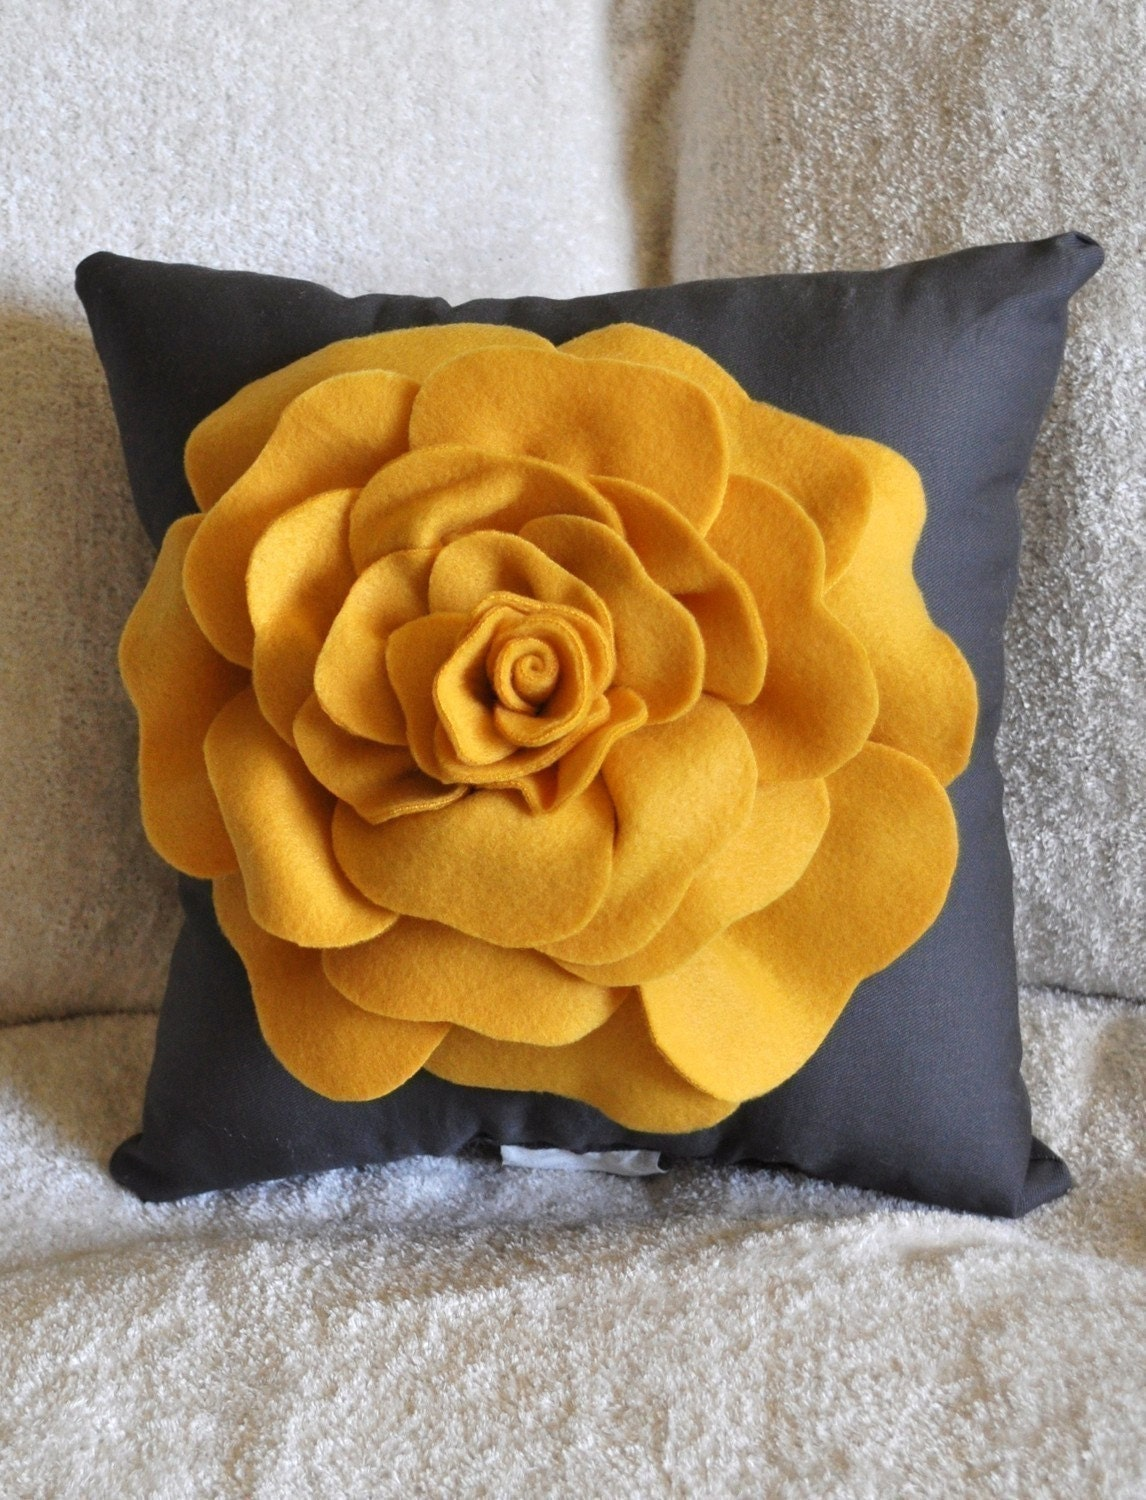 Rose Pillow Mustard Yellow on Grey 12 X 12